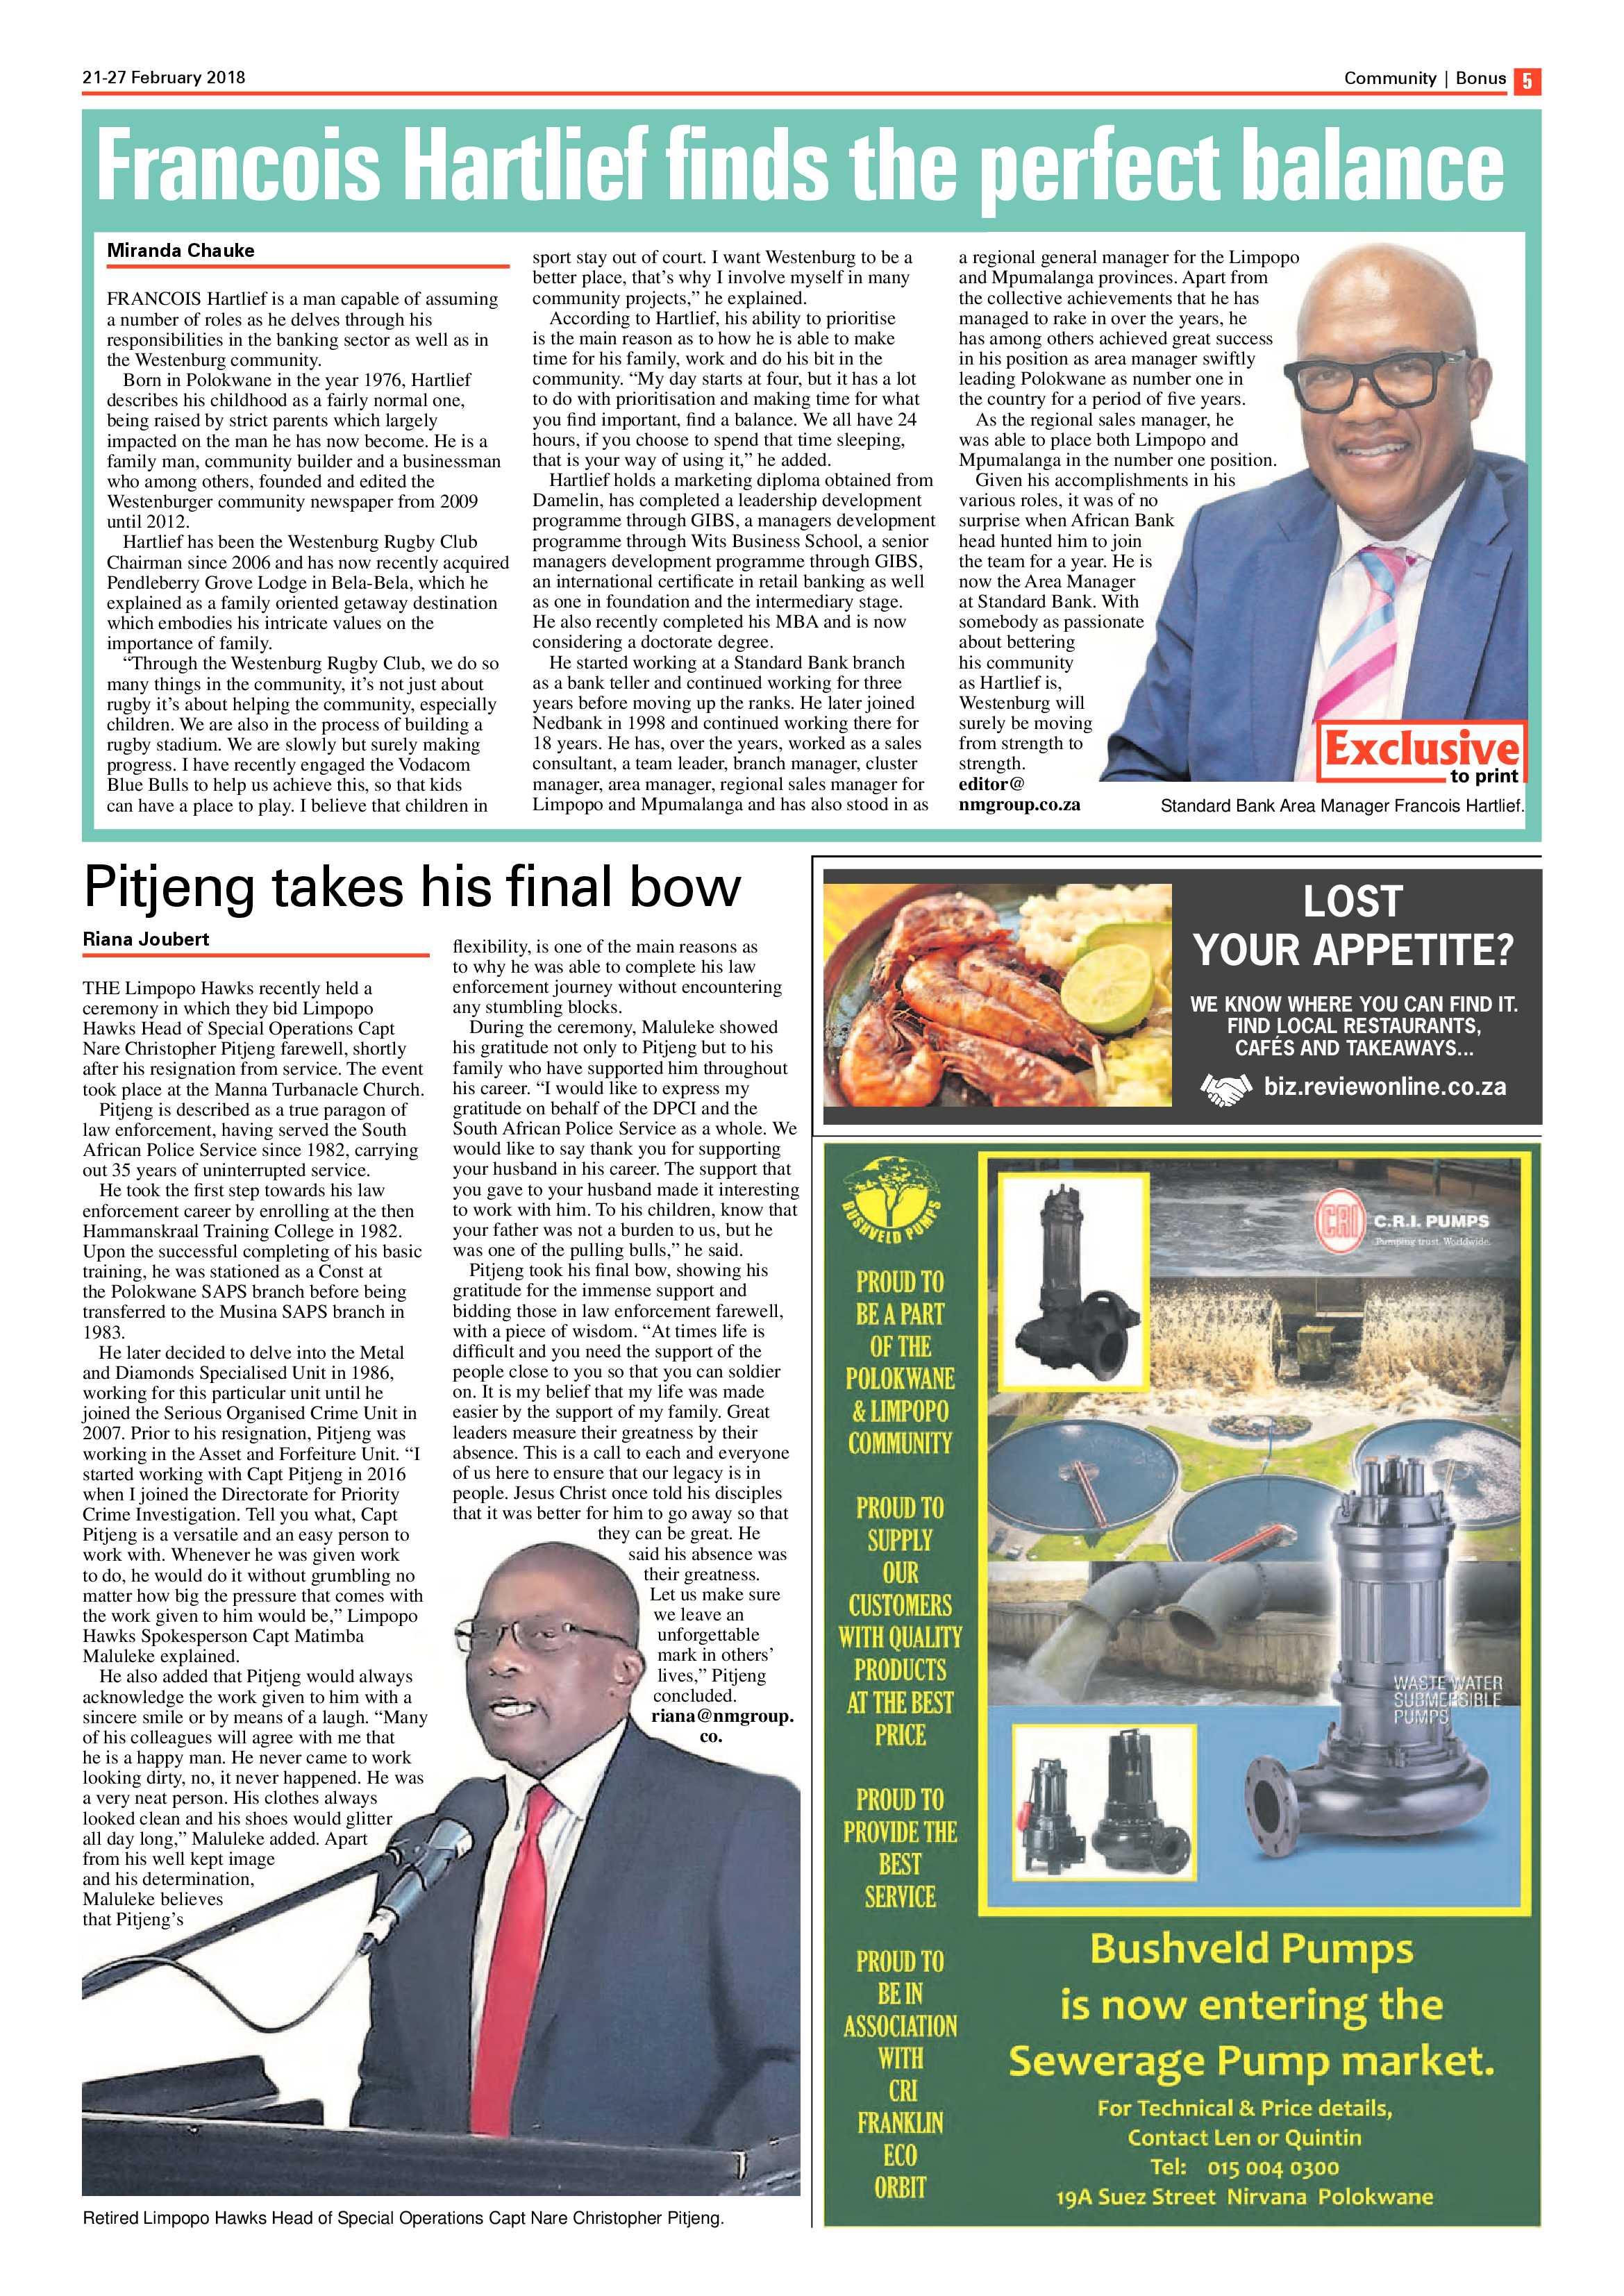 review-bonus-21-february-2018-epapers-page-5